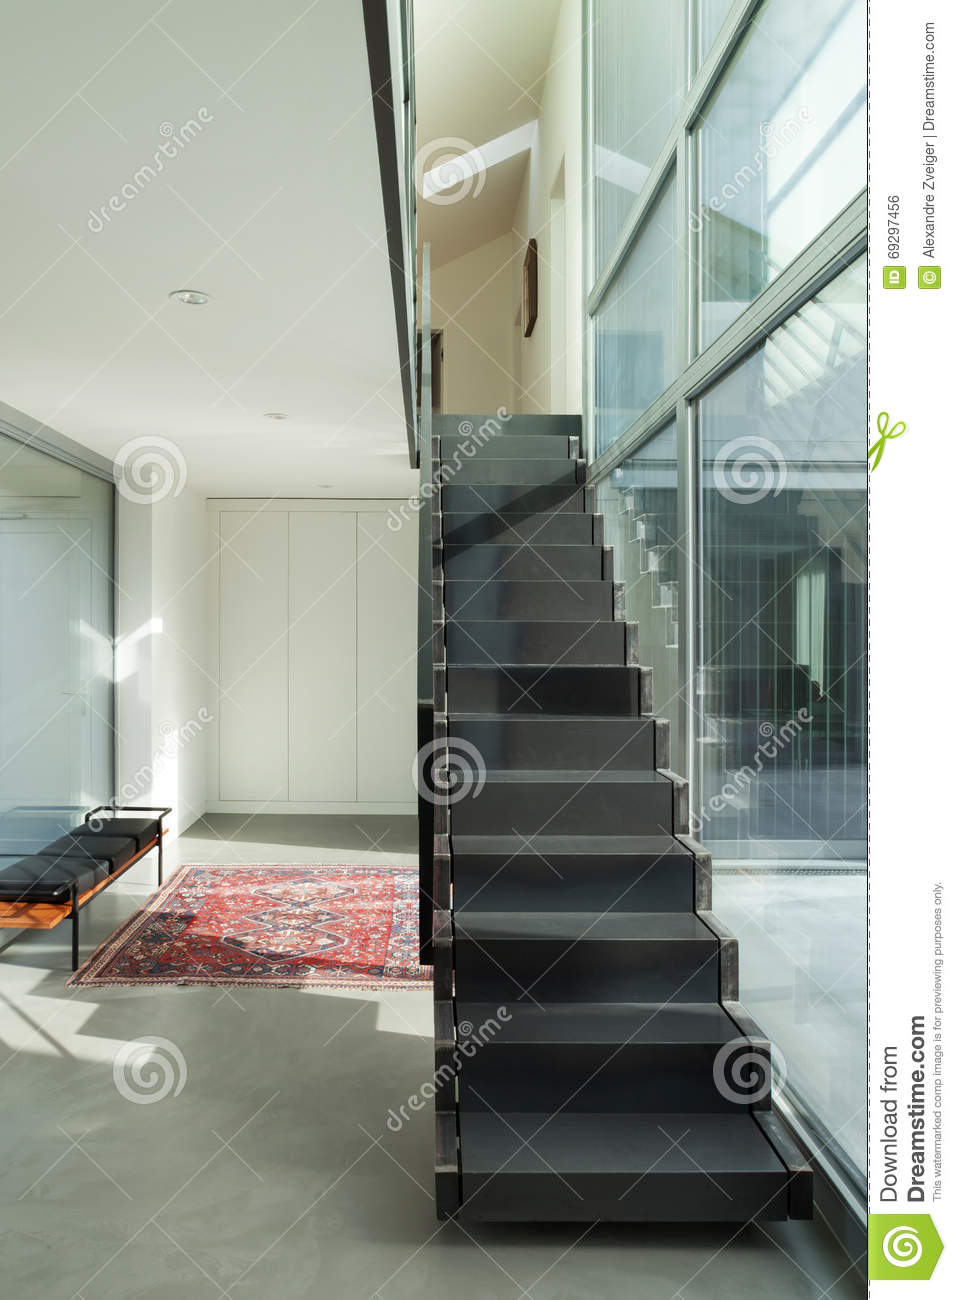 int rieur escalier de fer d 39 une maison moderne photo stock image du cement fond 69297456. Black Bedroom Furniture Sets. Home Design Ideas